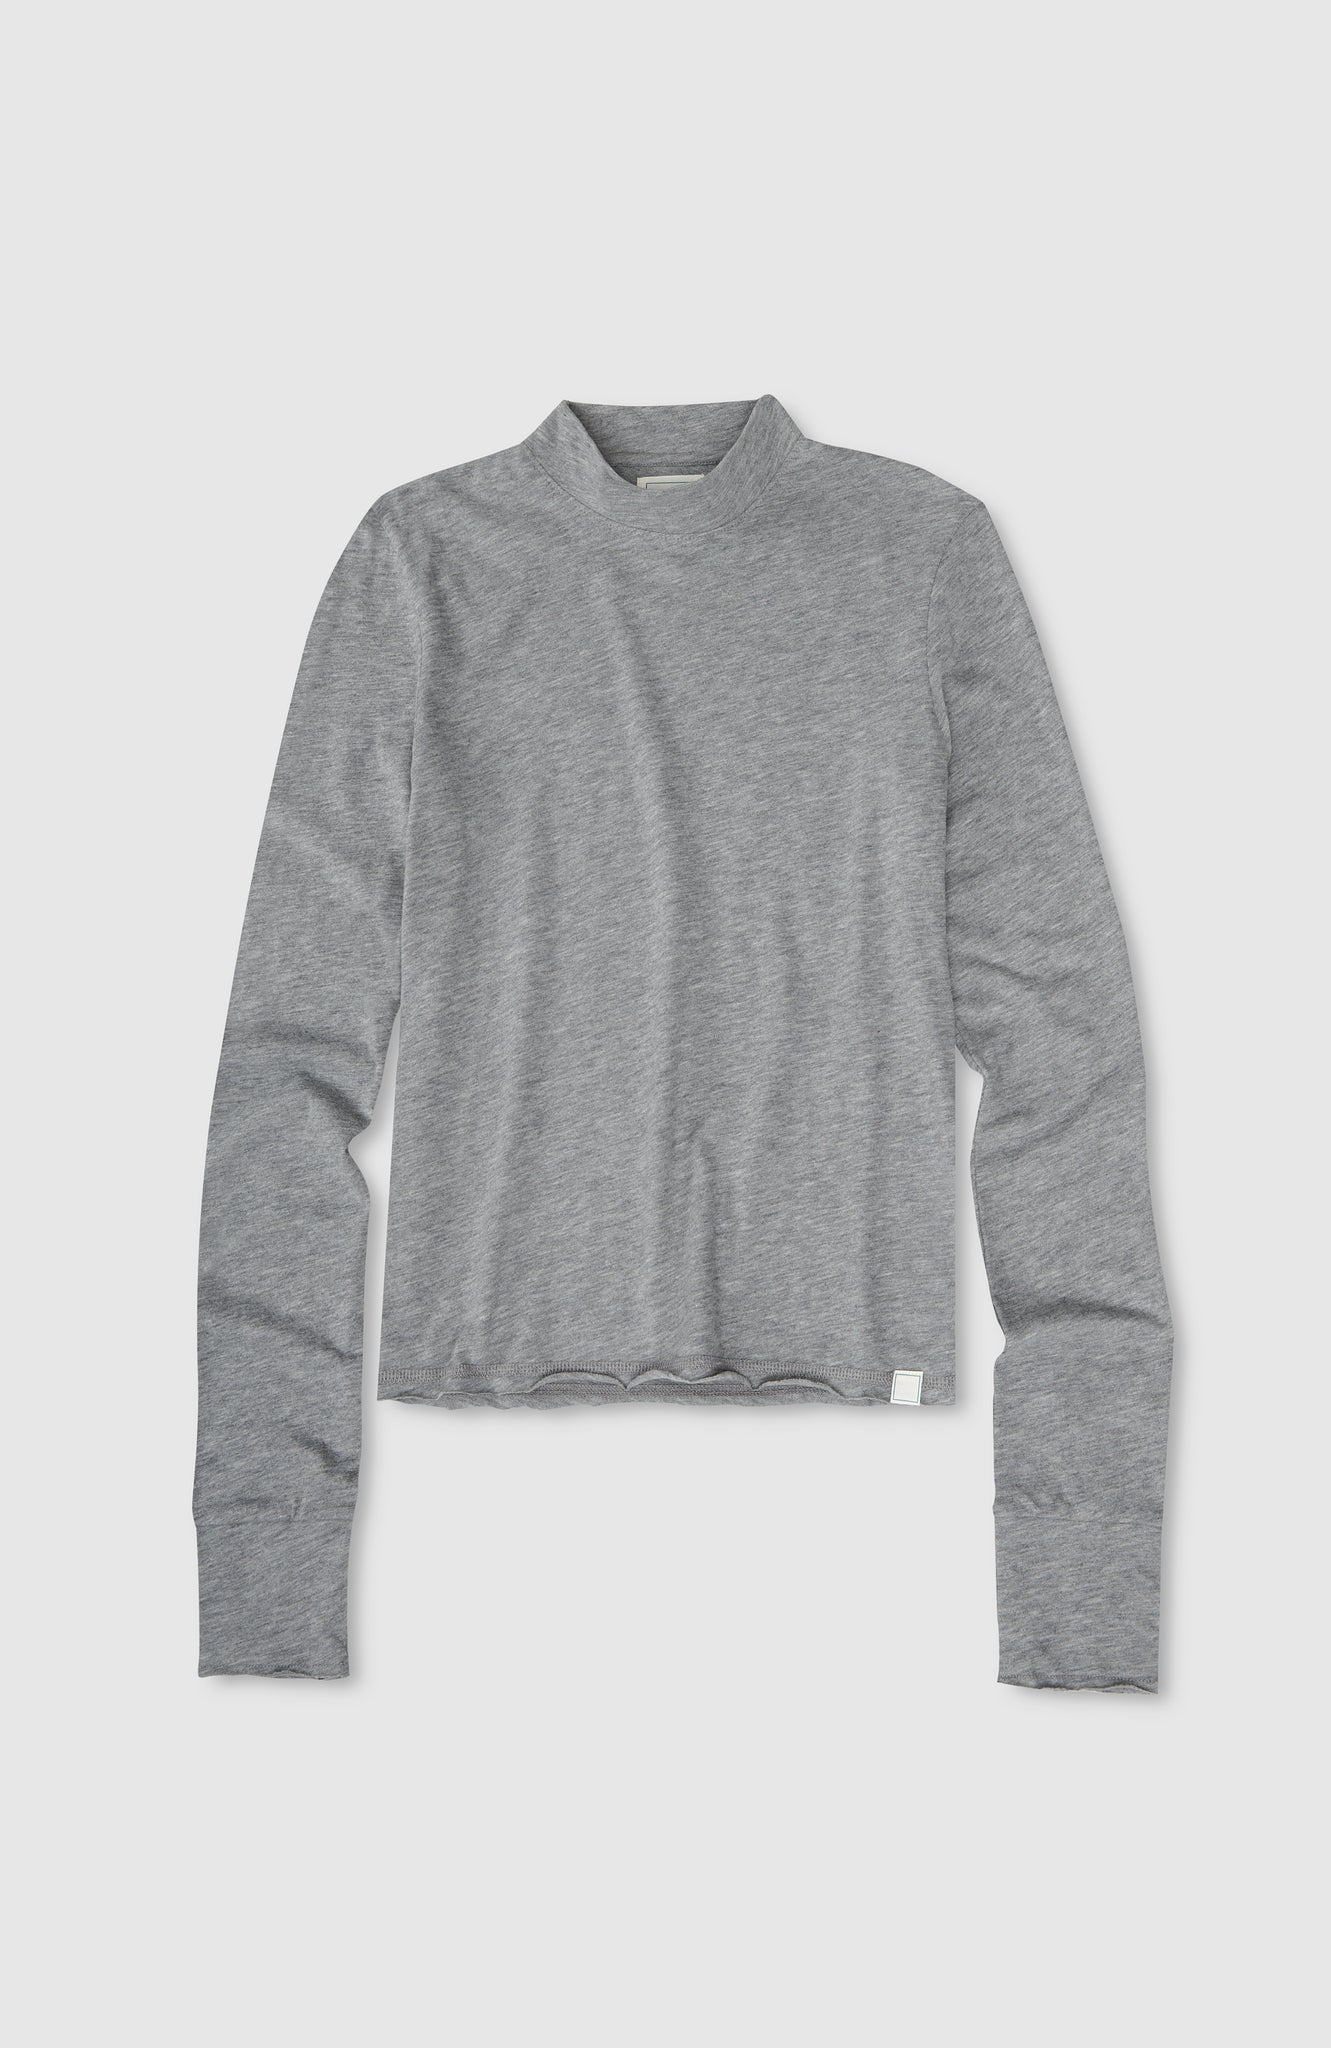 L/S Mock Neck - Heather Grey